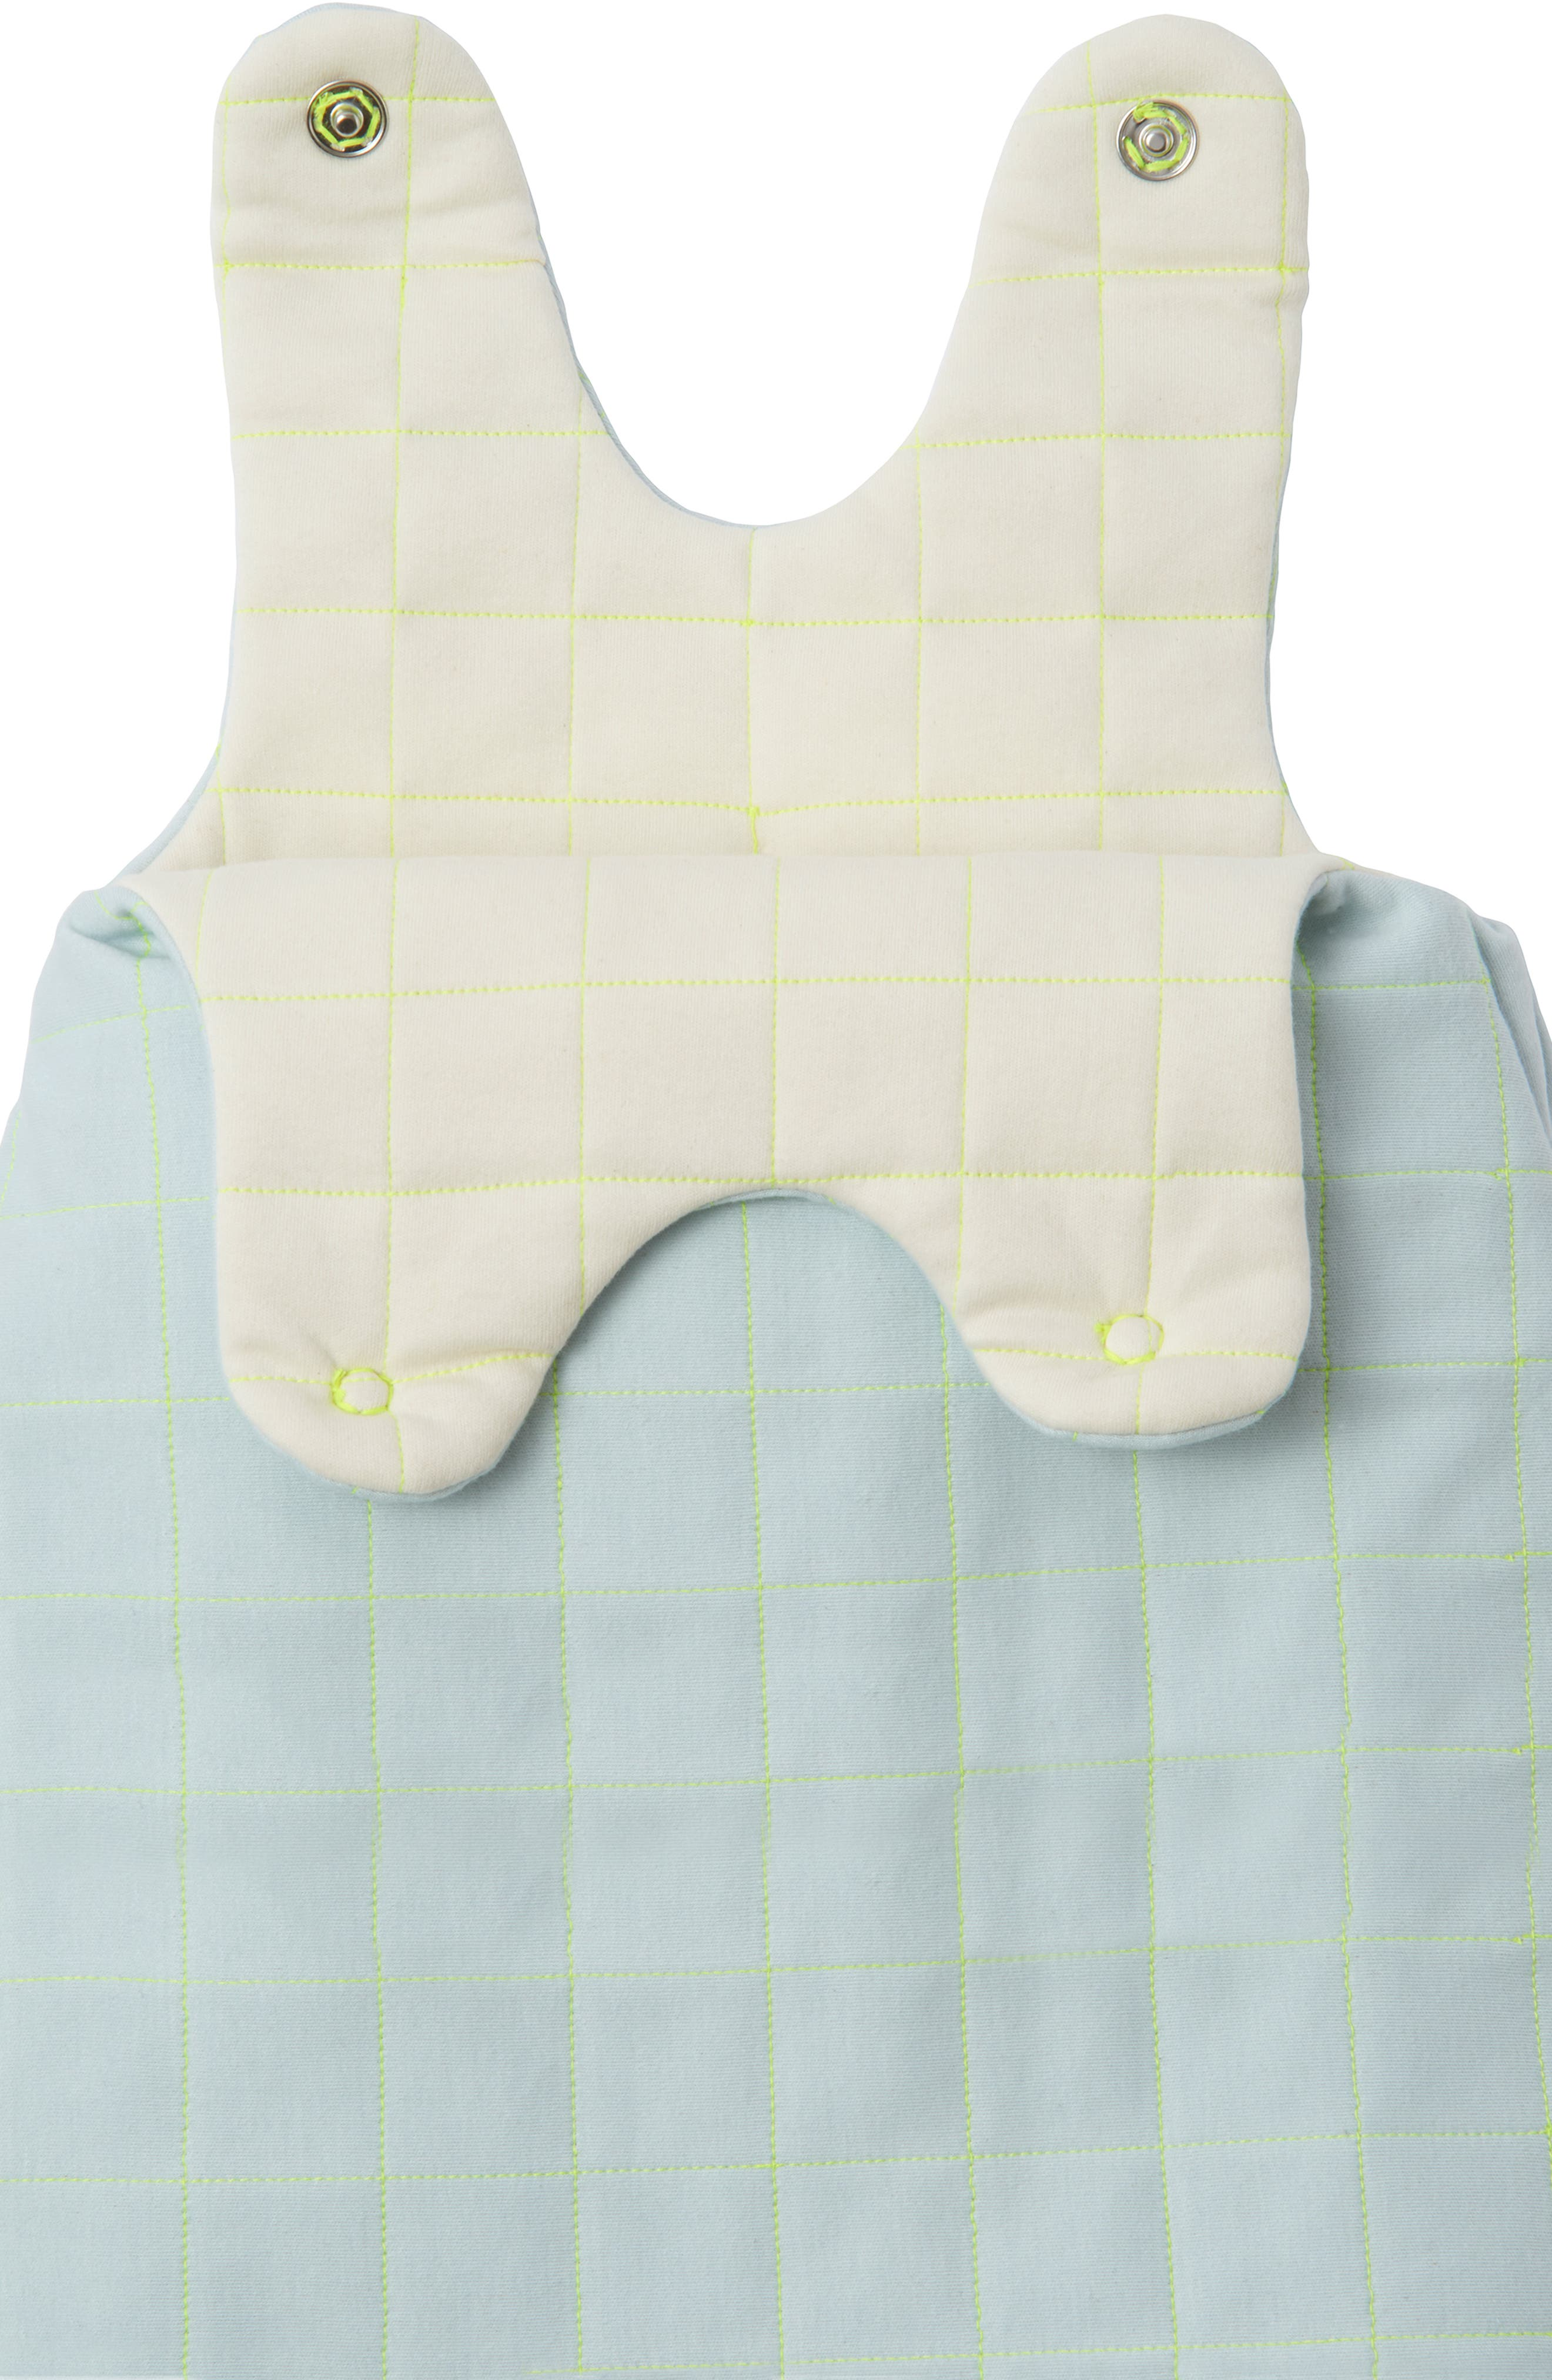 Quilted Organic Cotton Wearable Blanket,                             Alternate thumbnail 2, color,                             BLUE